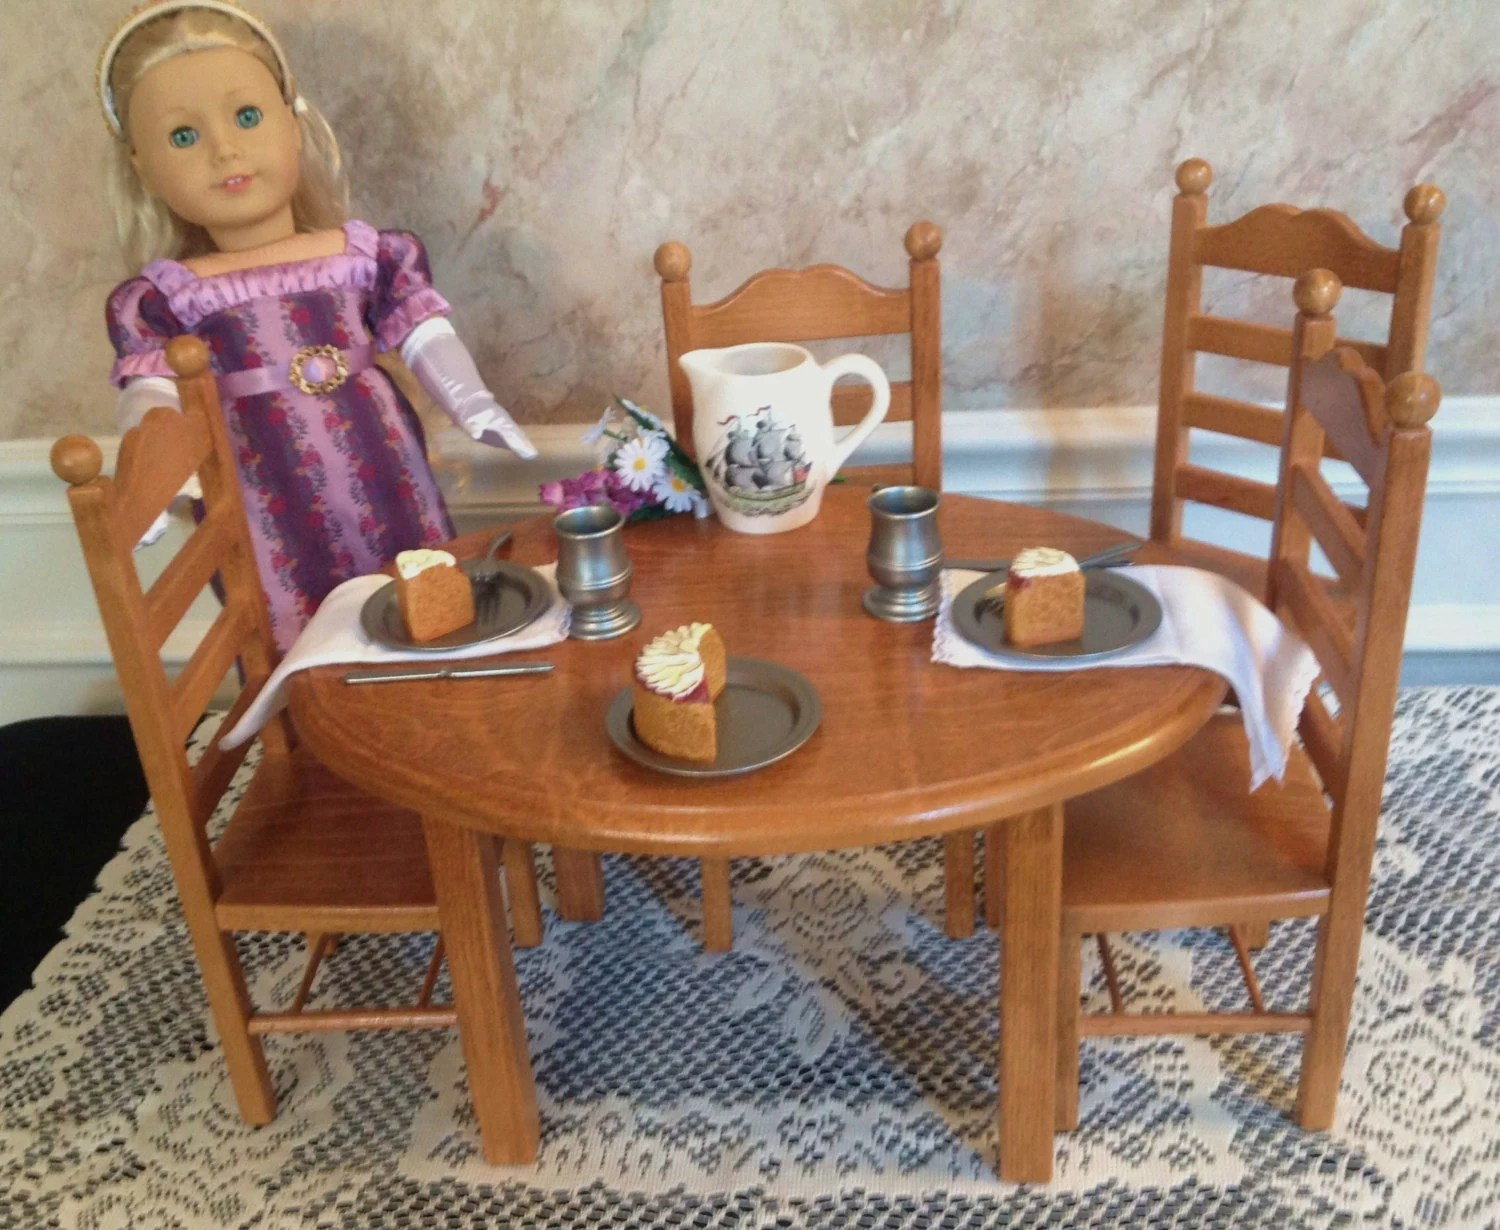 18 doll table and chairs aluminum chaise lounge pool american girl furniture oval 4 chair set etsy image 0